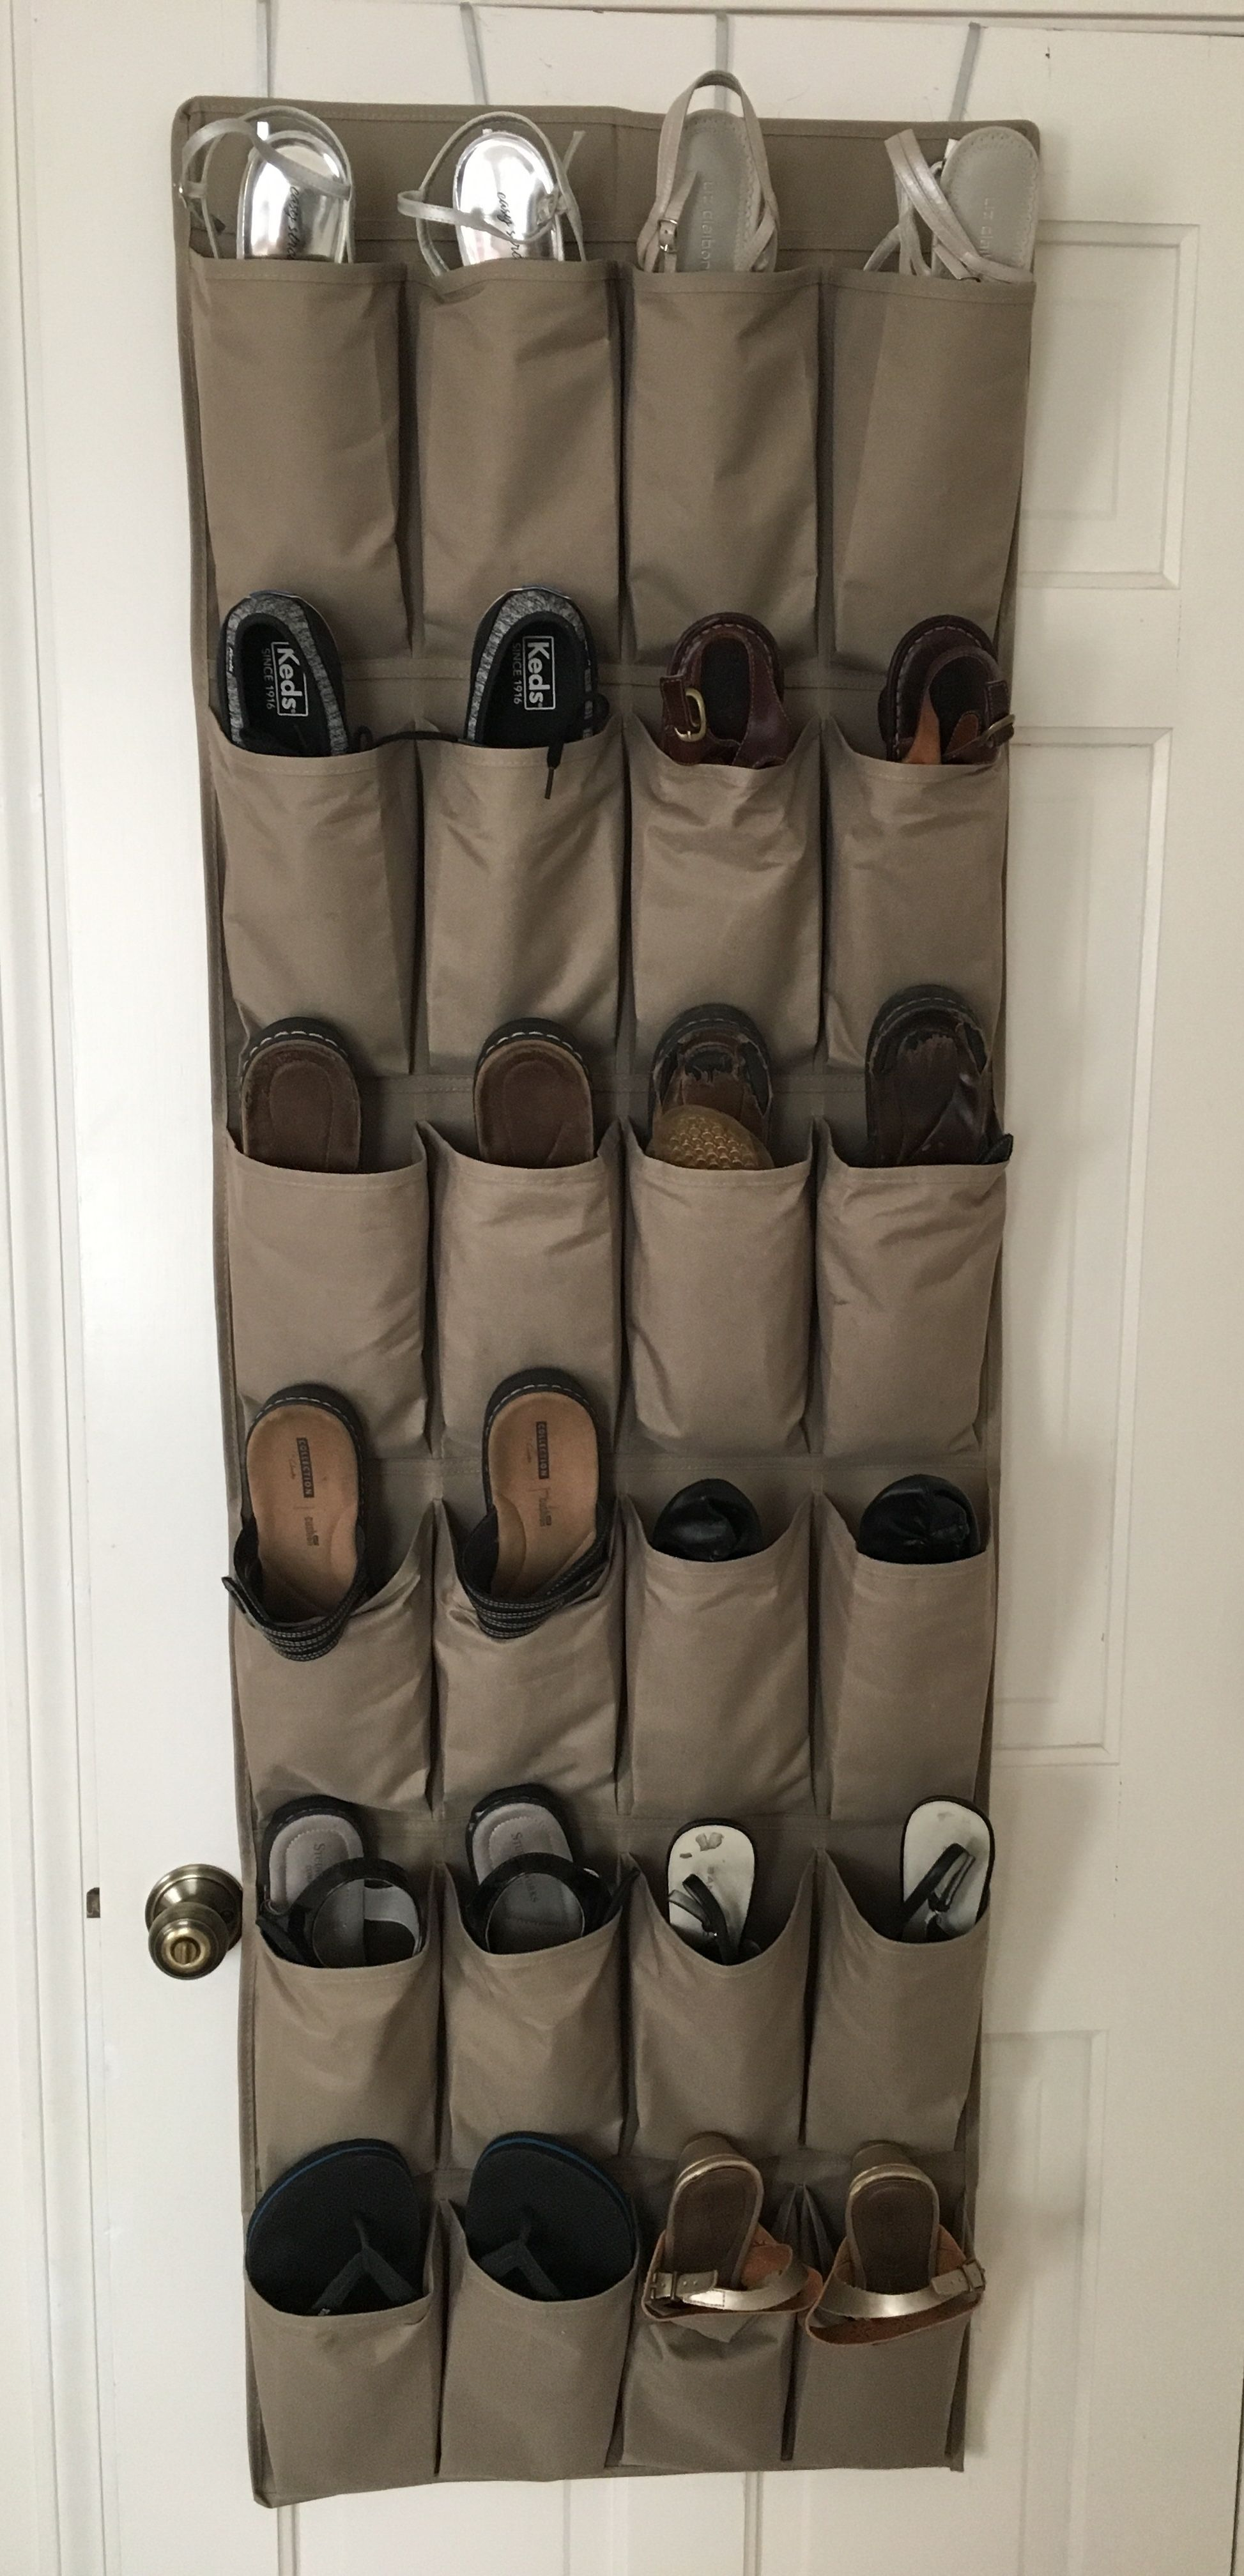 Organized shoes for all seasons #summerhomeorganization Creating a shoe holder with spring/summer shoes and a 2nd with fall/winter shoes makes changing seasons easier! #summerhomeorganization